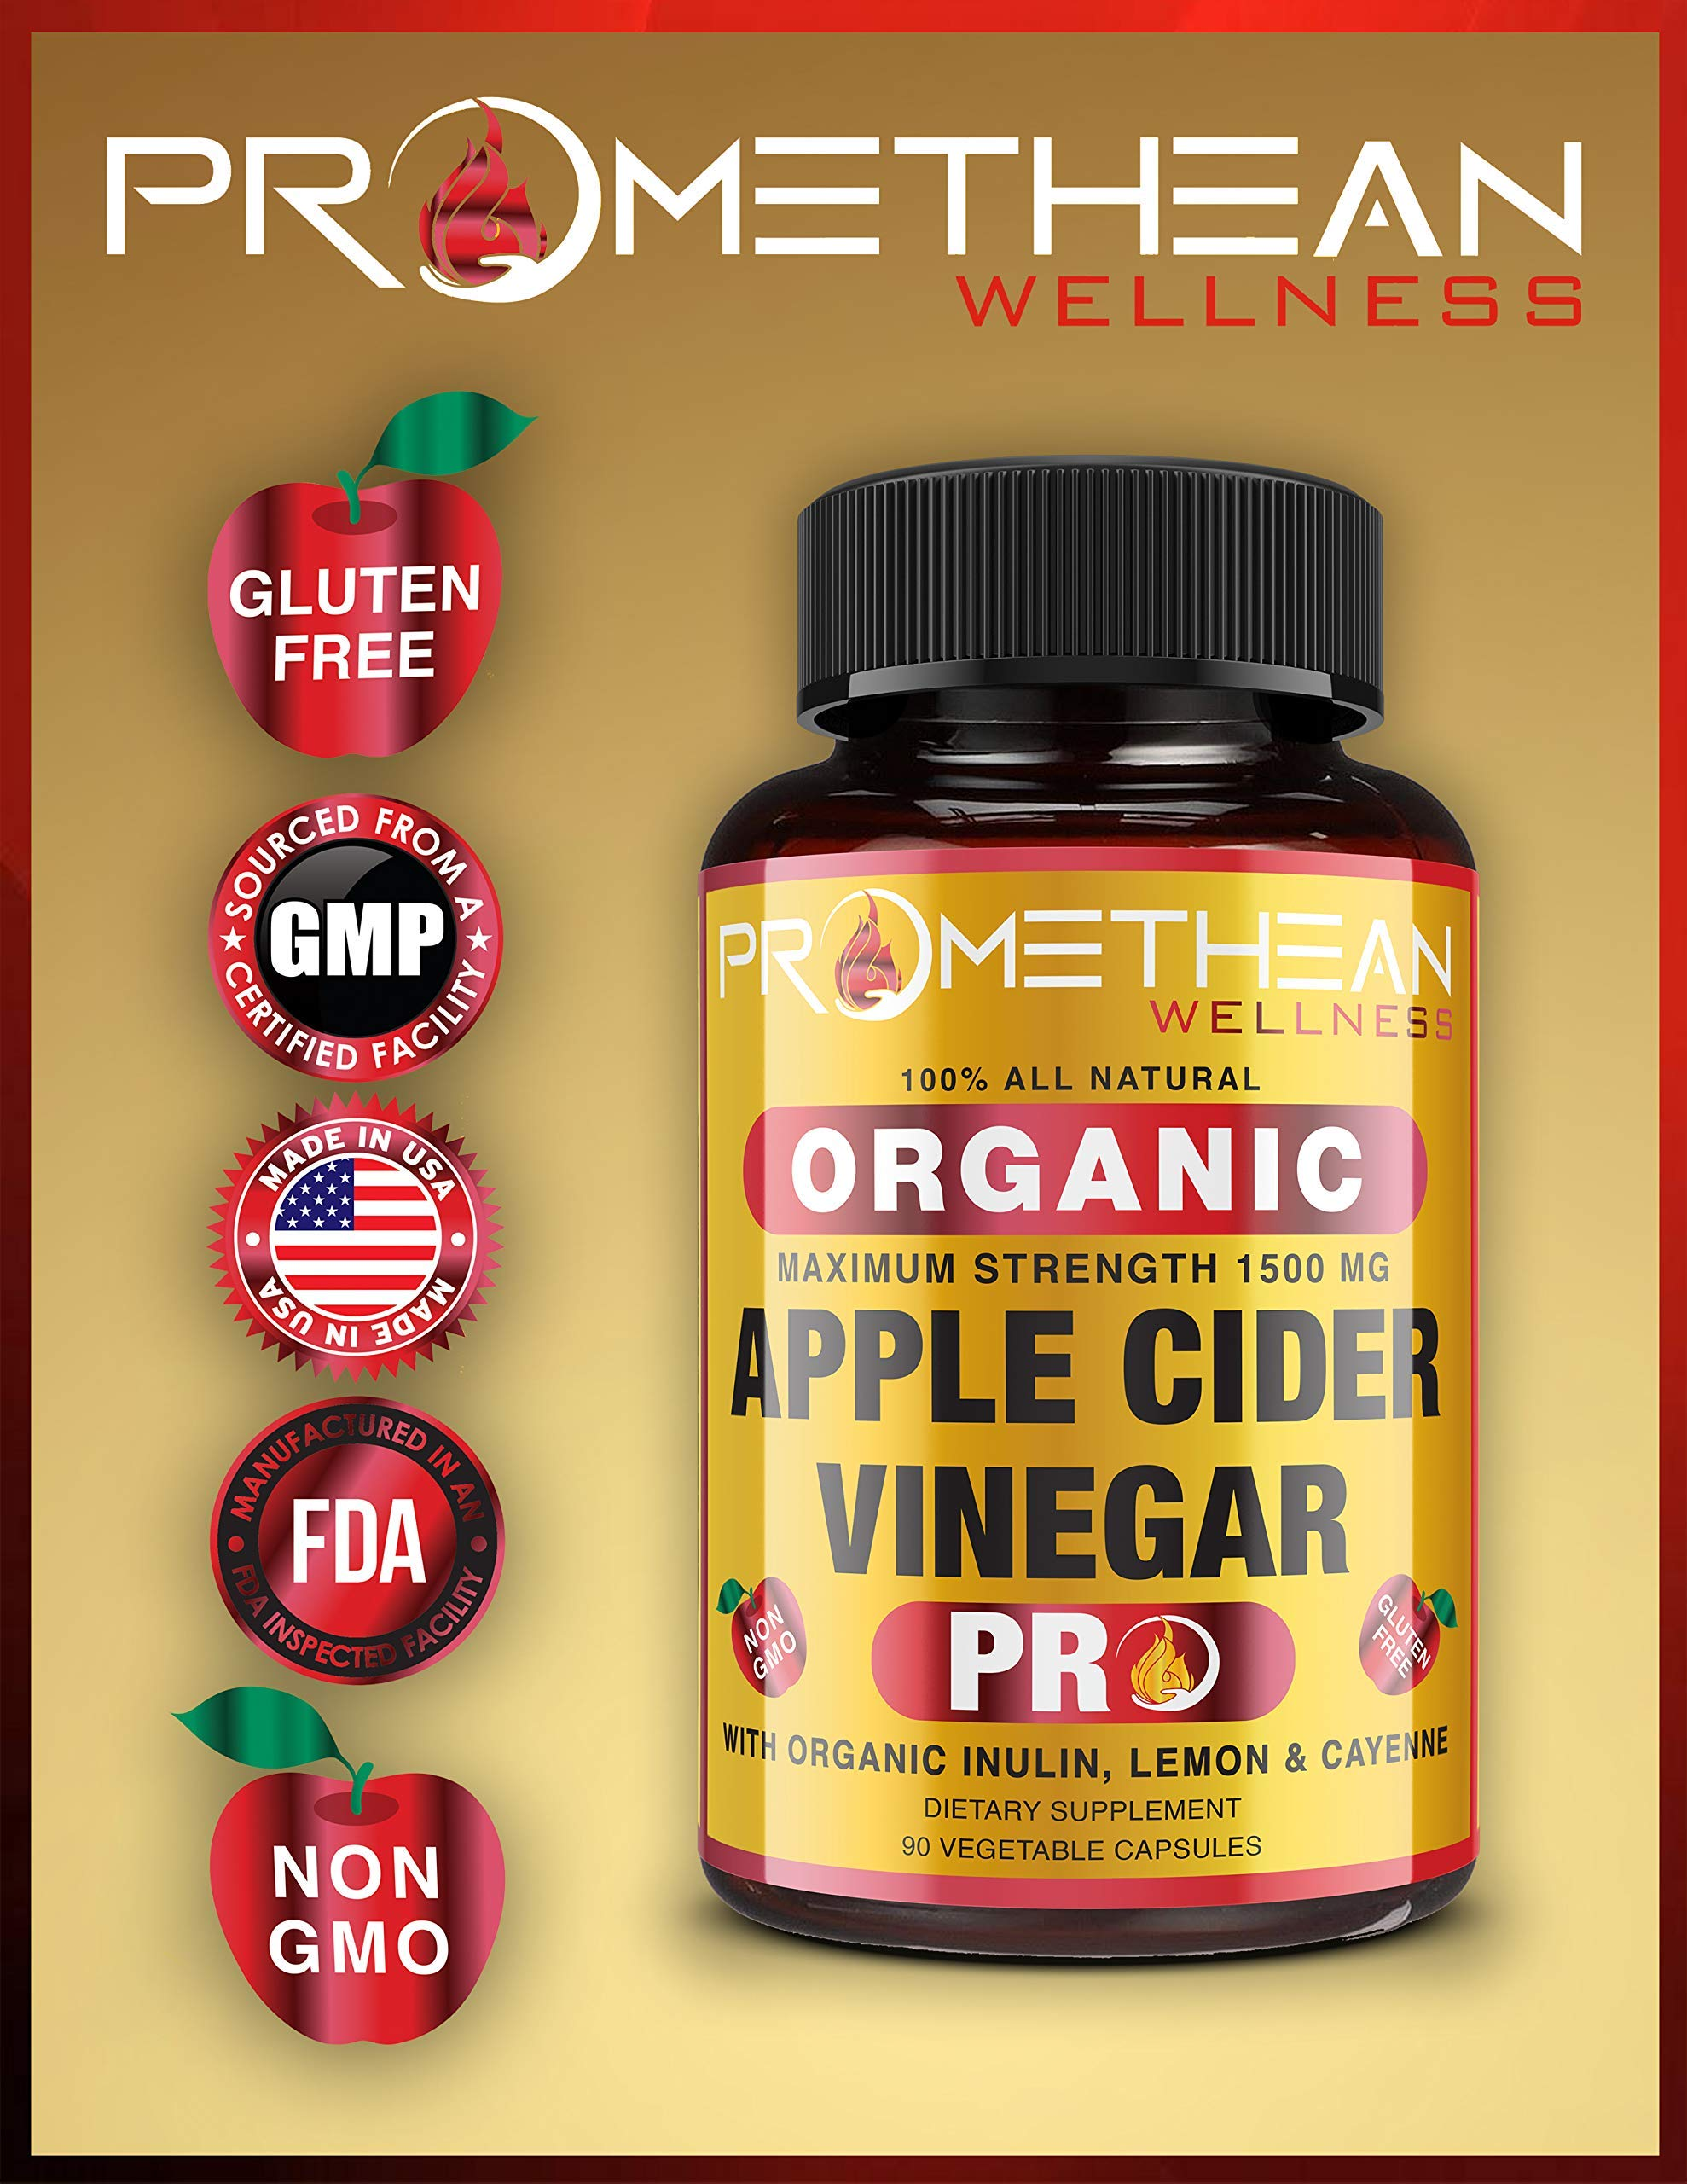 Organic Apple Cider Vinegar Capsules ACV PRO Diet Pills Detox Cleanse for Weight Loss Raw Unfiltered With Mother Powder Supplements Tablets Vitamins Cayenne Pepper Inulin Prebiotics Lemon 1500mg 90 ct by Promethean Wellness LLC (Image #4)